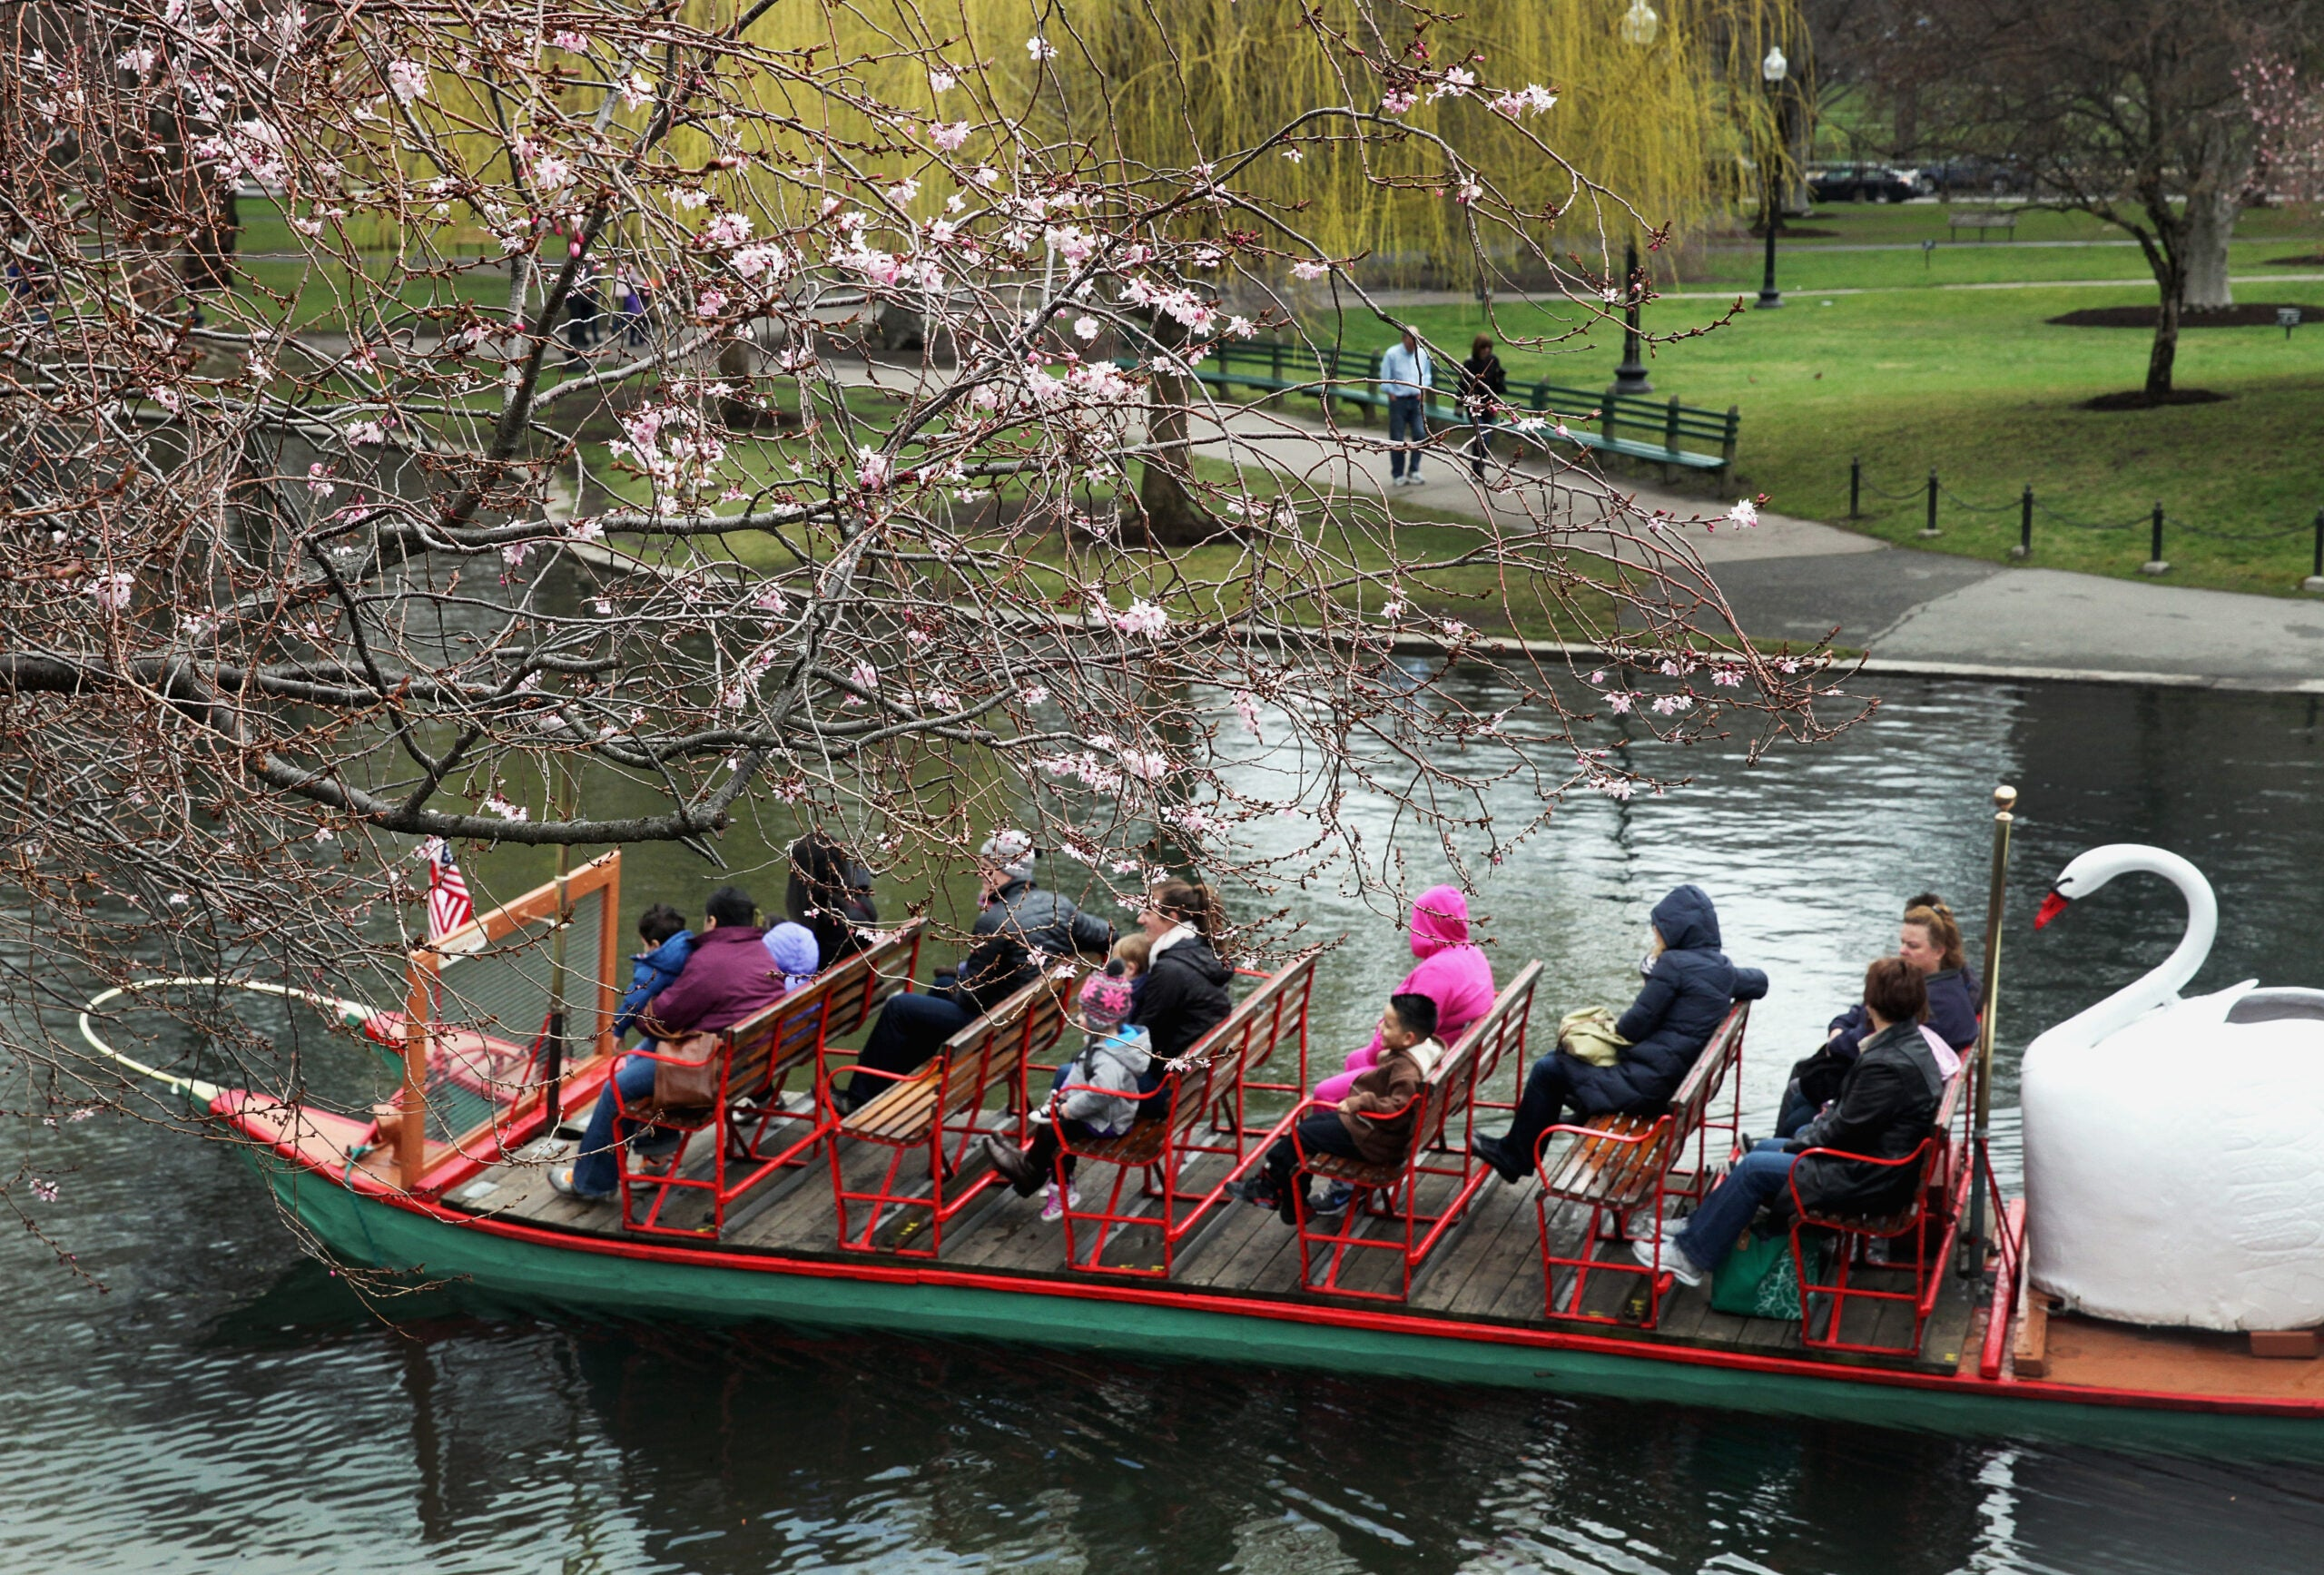 Swan boats made their debut at Boston's Public Garden in April 2013.